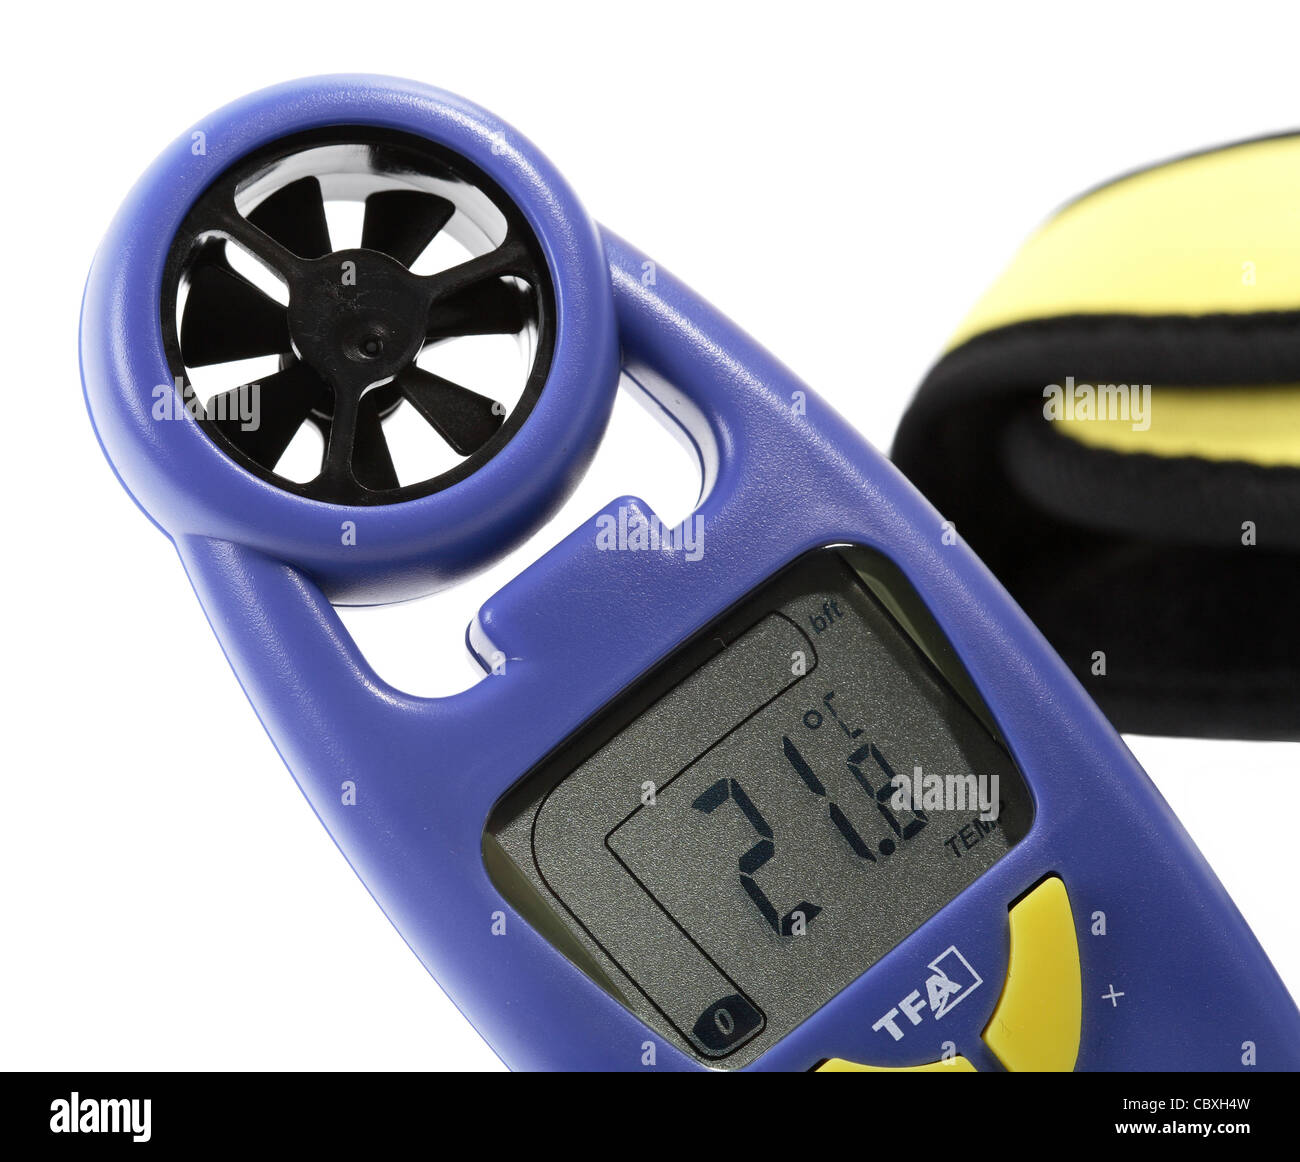 Wind speed meter - Stock Image